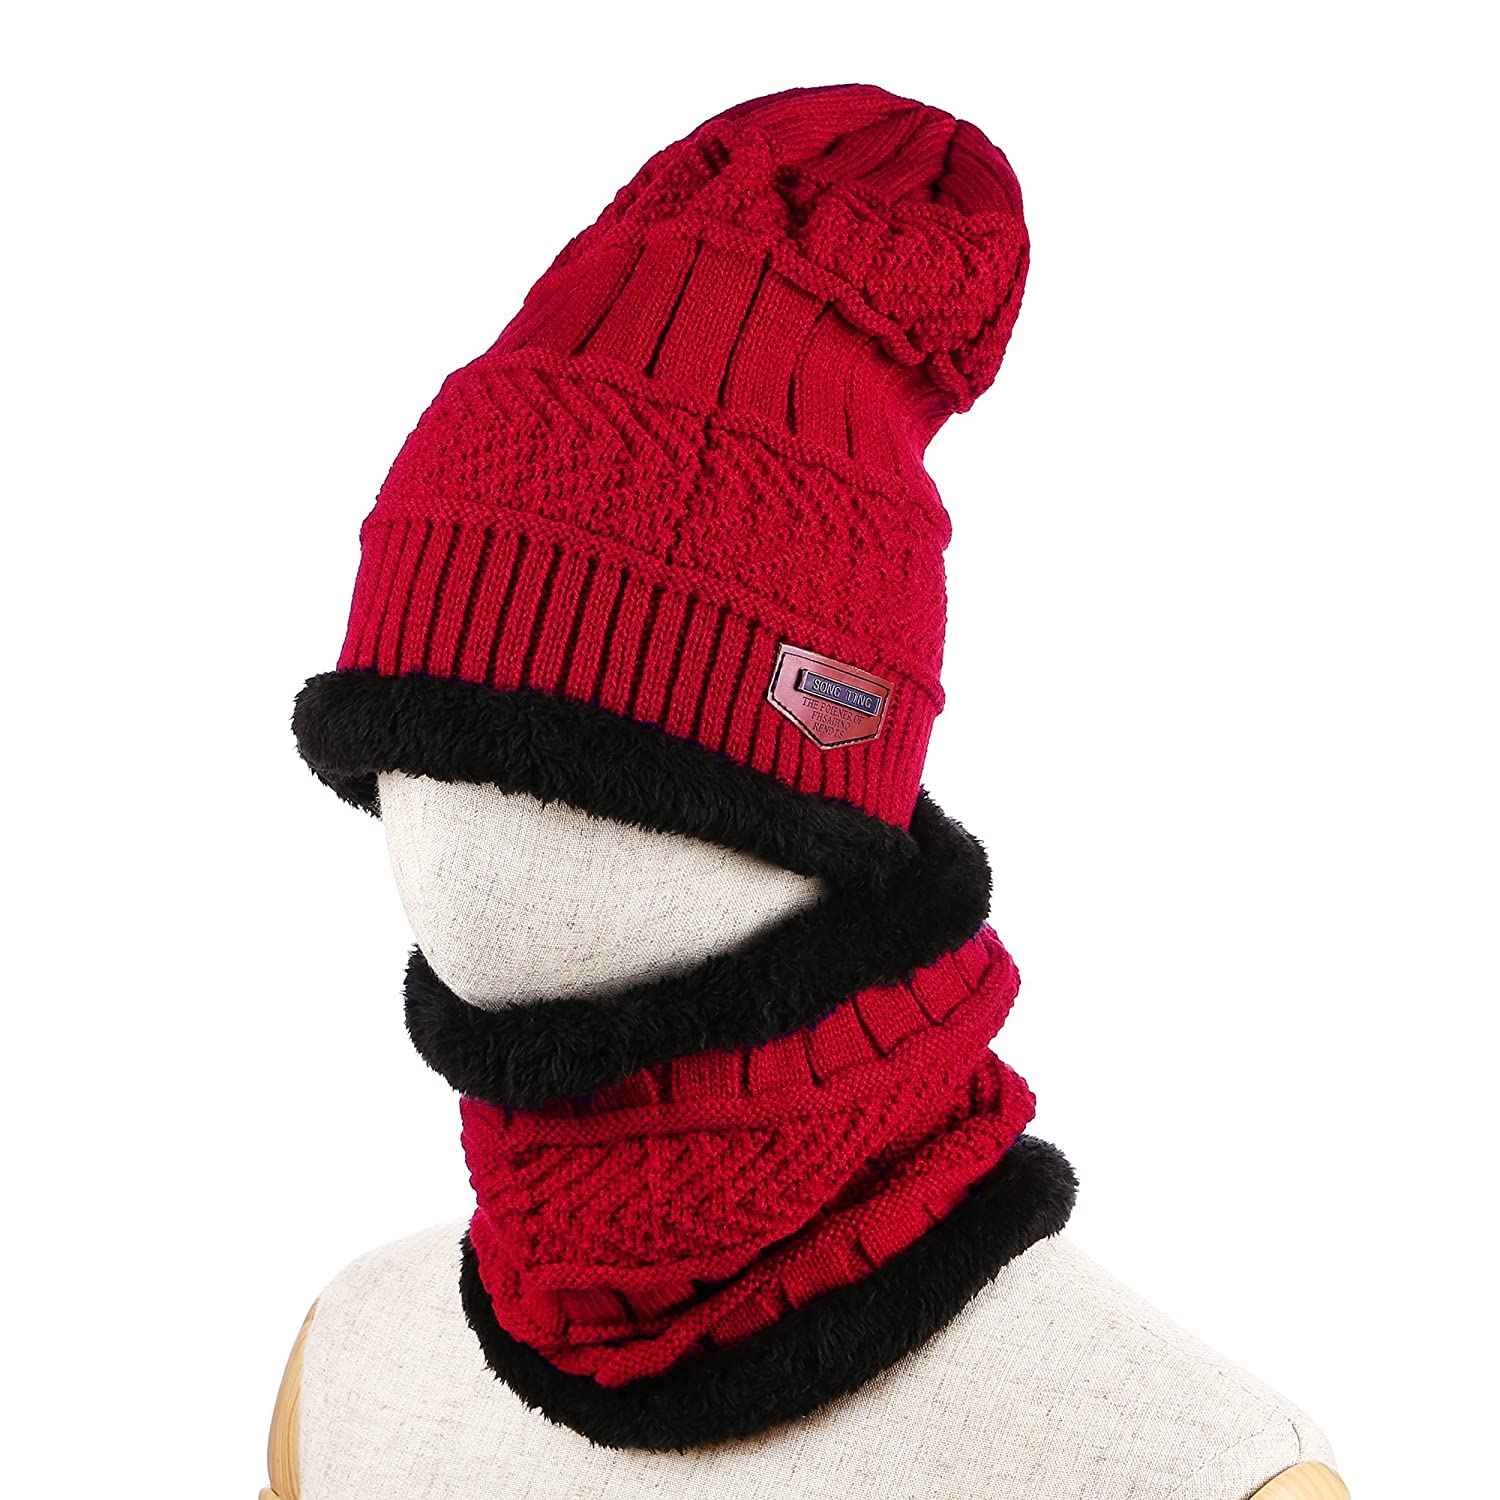 Unisex Winter Plus Velvet Thick Warm Hat Knitted Sets of Caps CA-EL-Hat5-BL